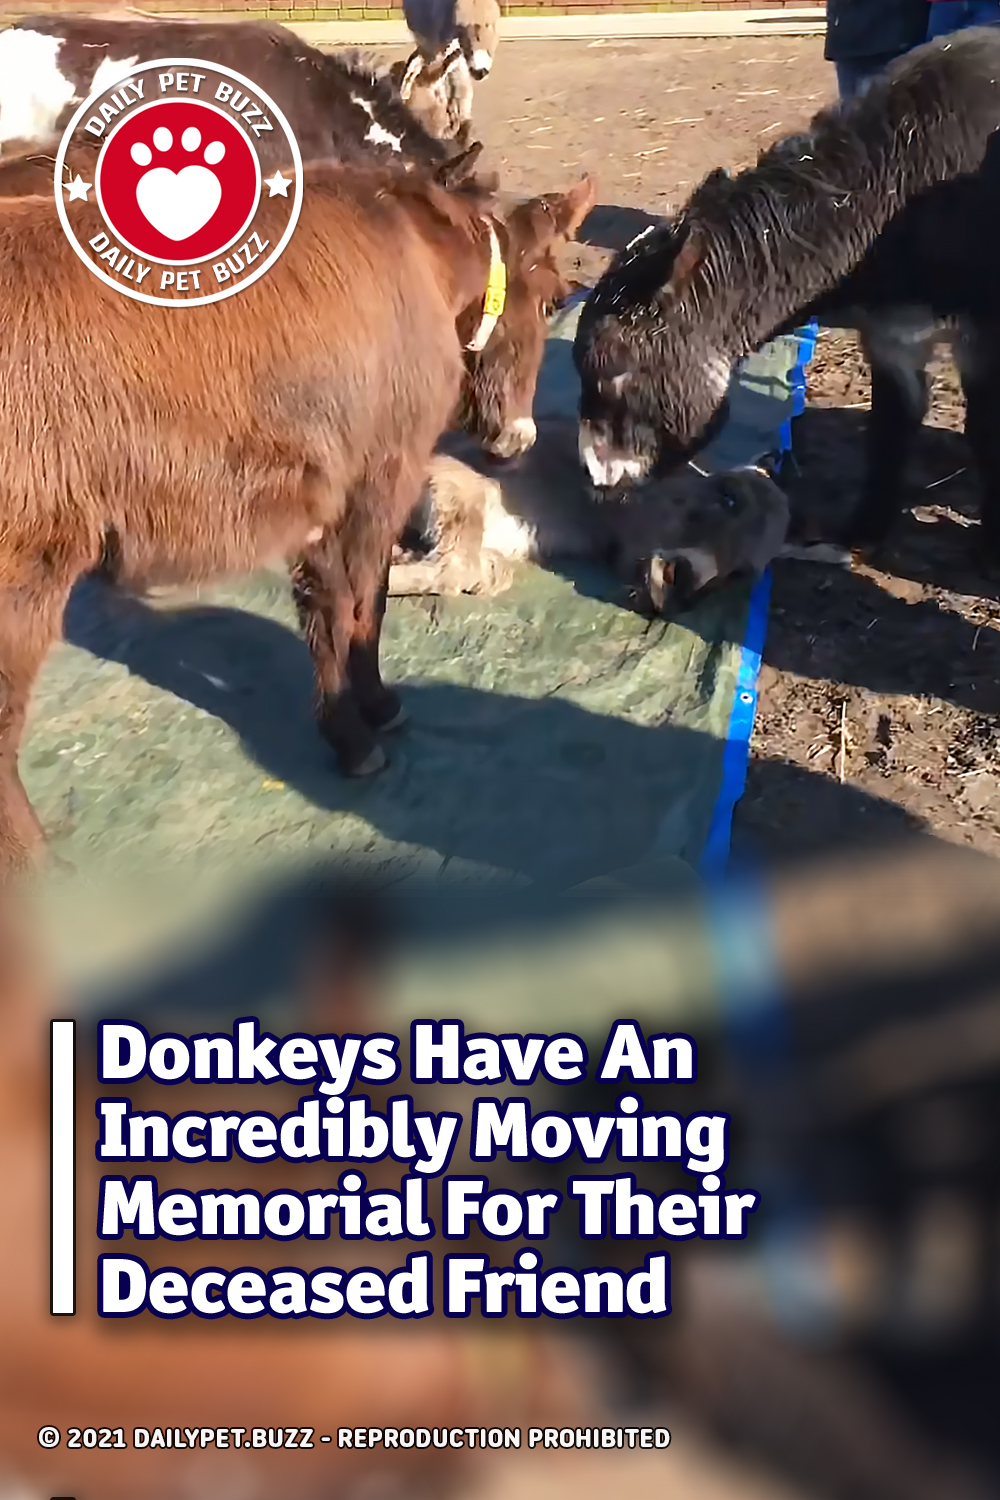 Donkeys Have An Incredibly Moving Memorial For Their Deceased Friend